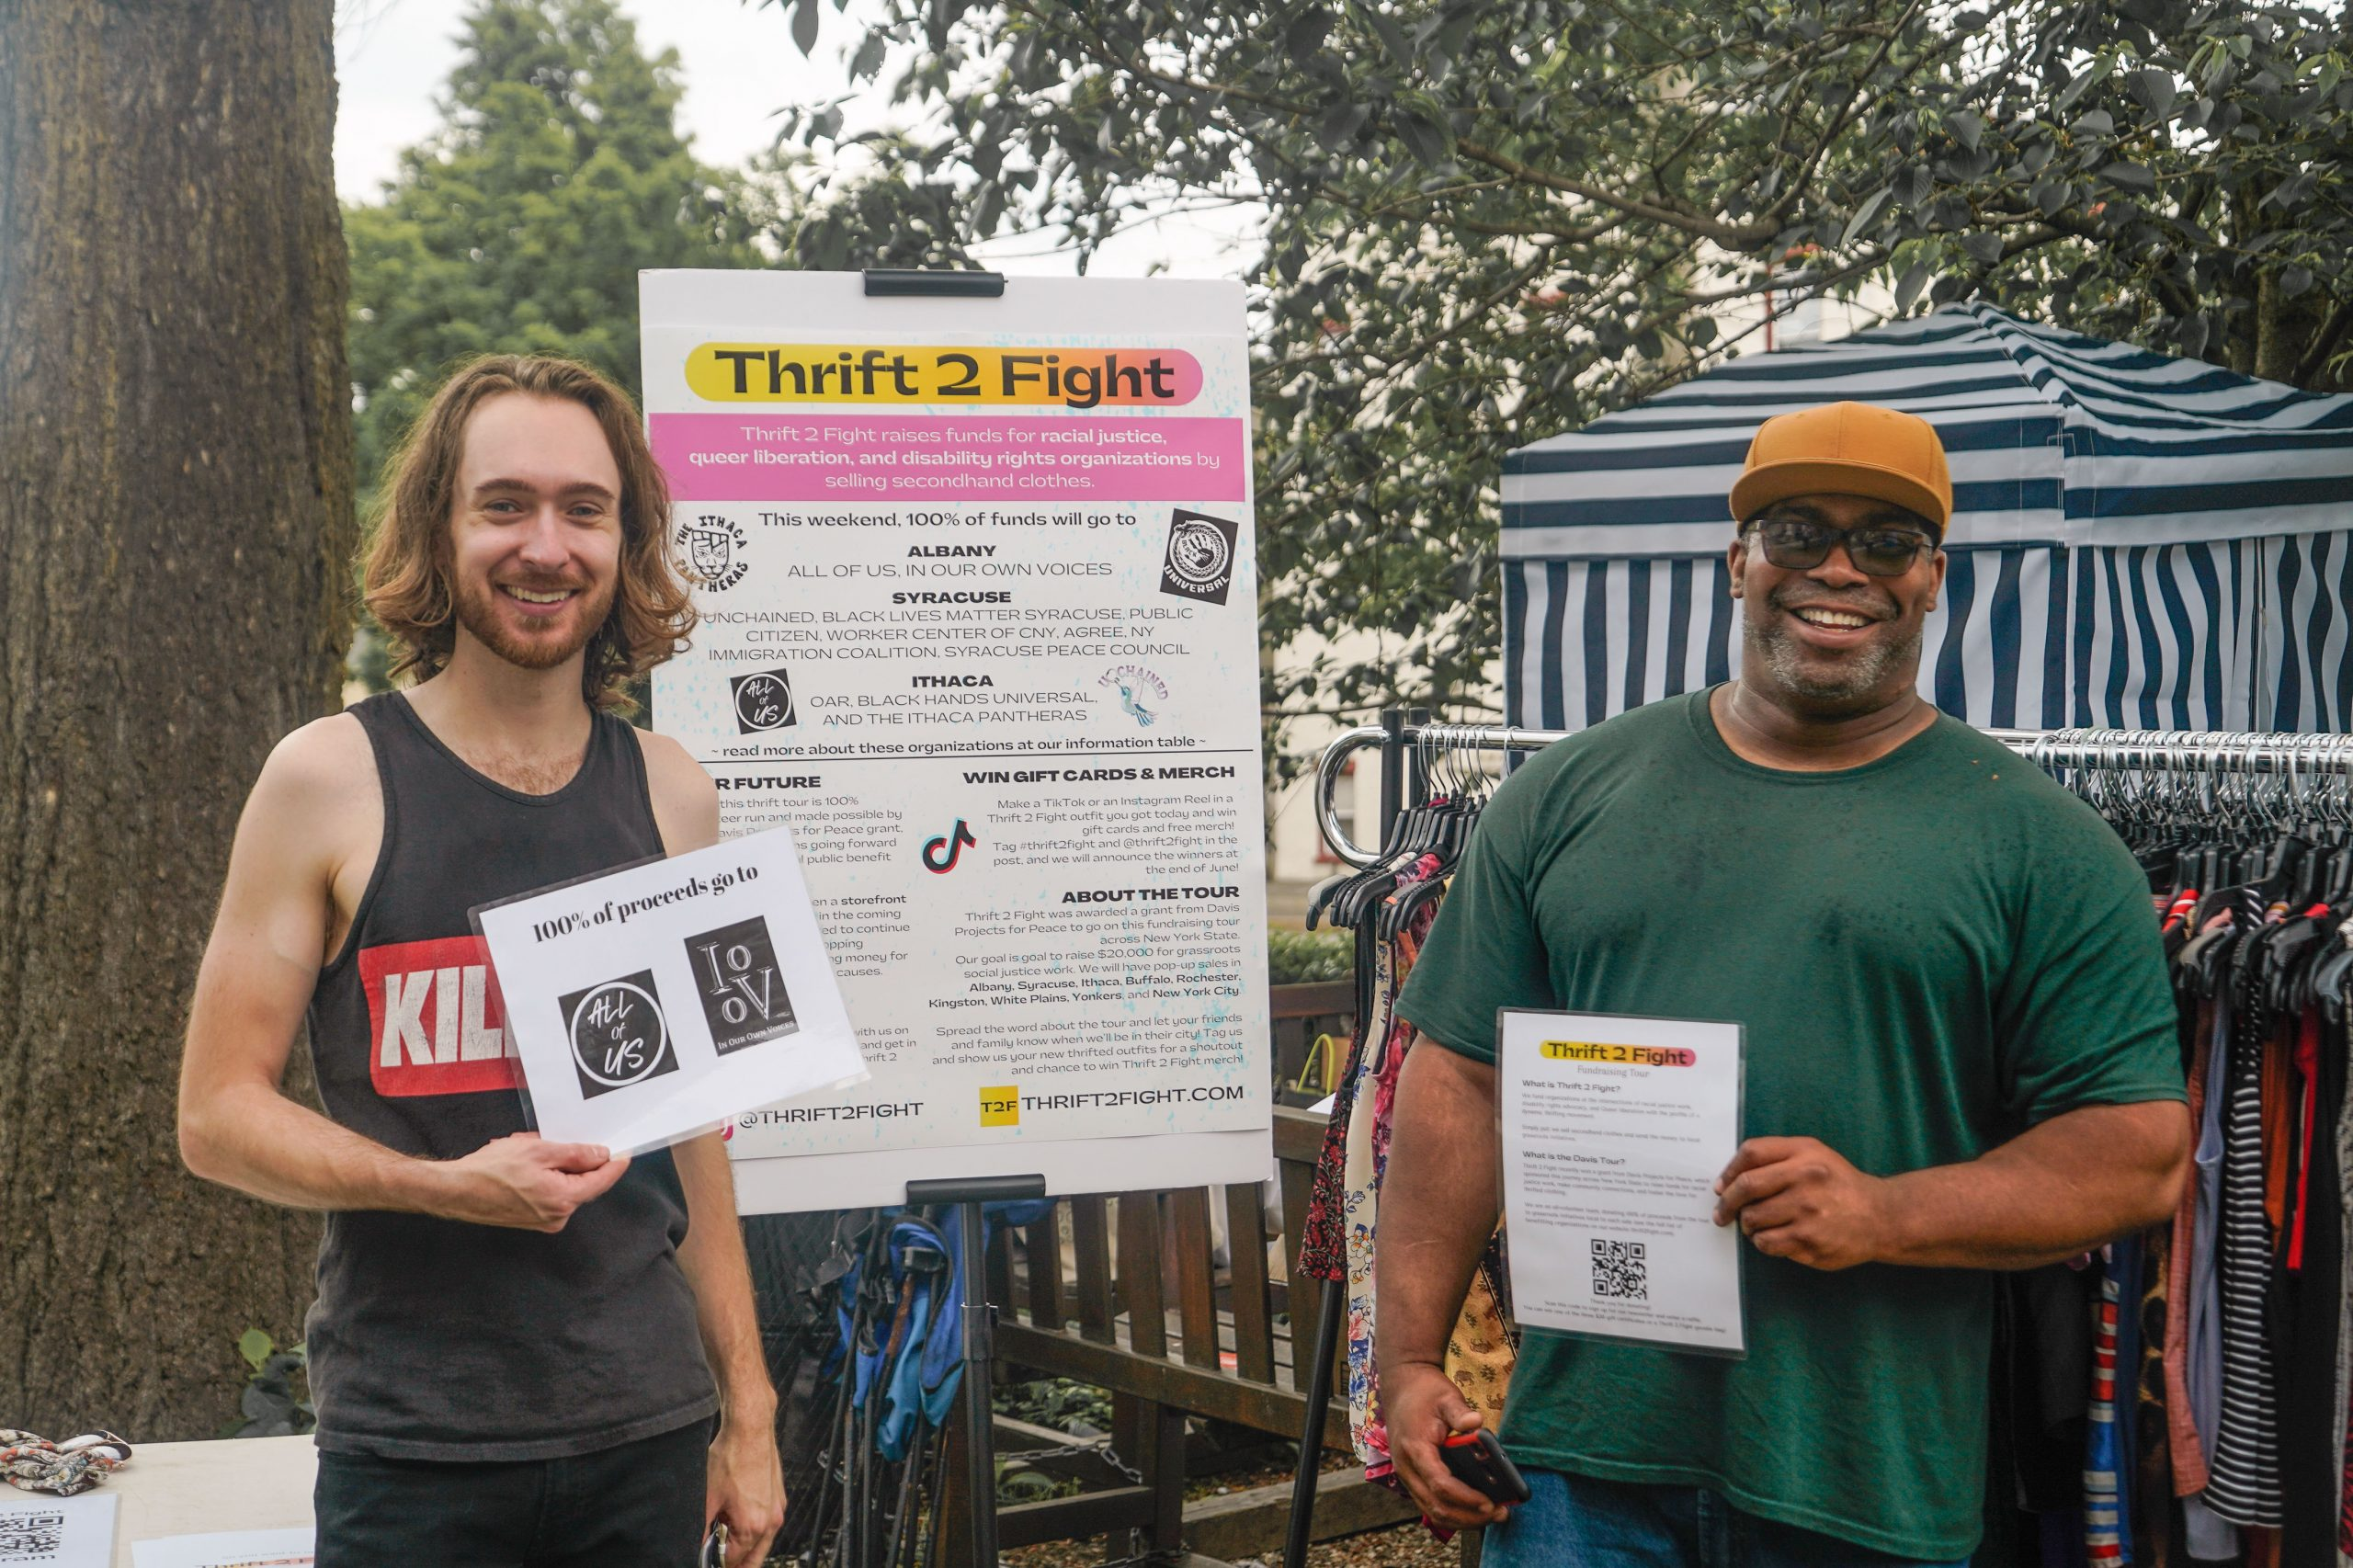 Collin and Gordon are standing next to the Thrift 2 Fight info board at the Albany Tour Sale